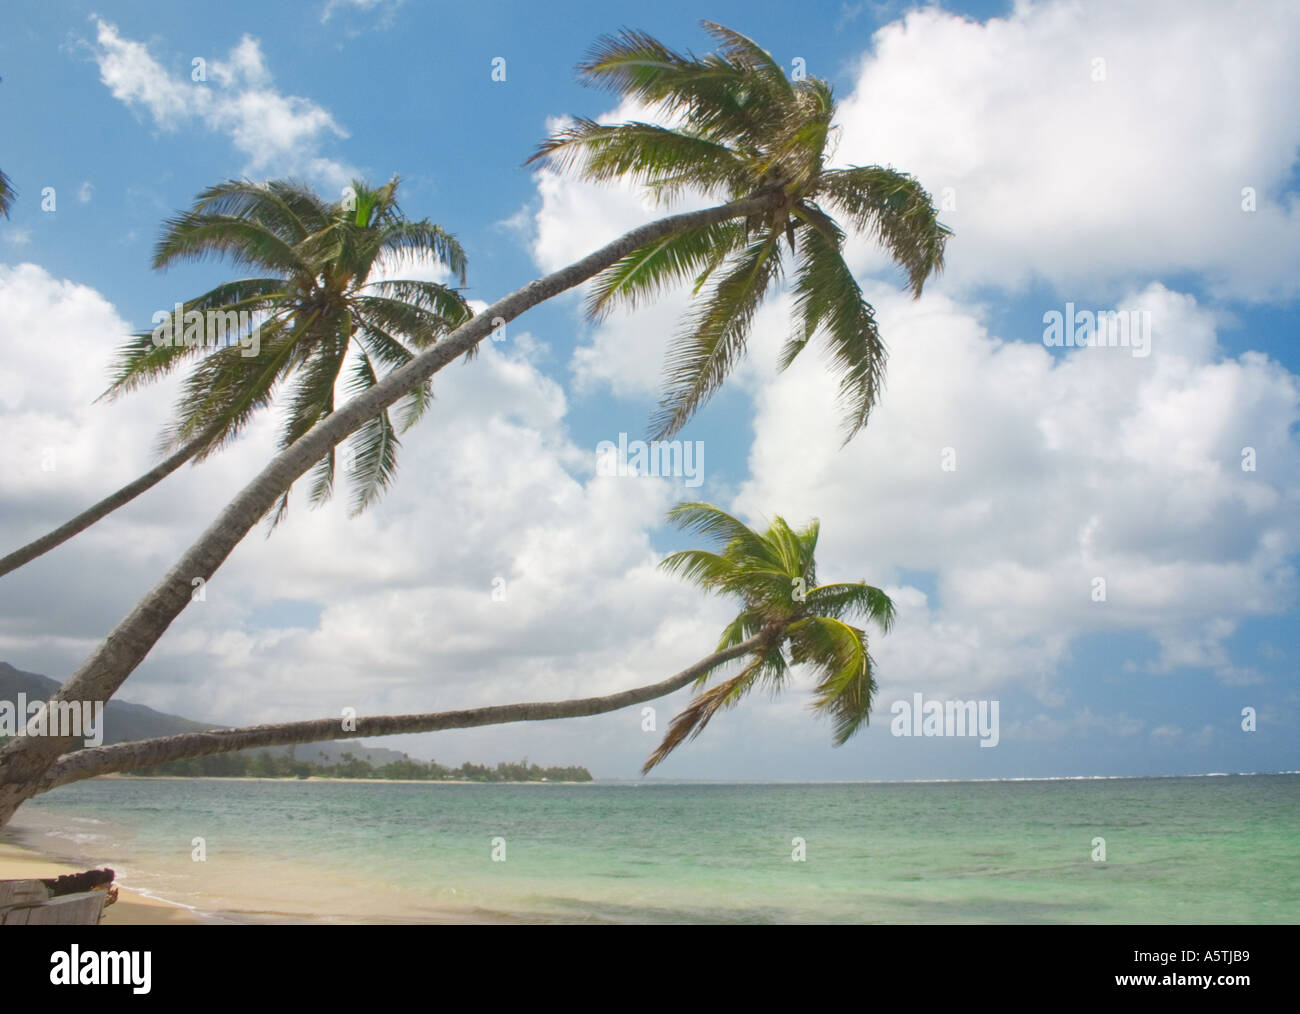 palm trees leaning over beach stock photos palm trees leaning over